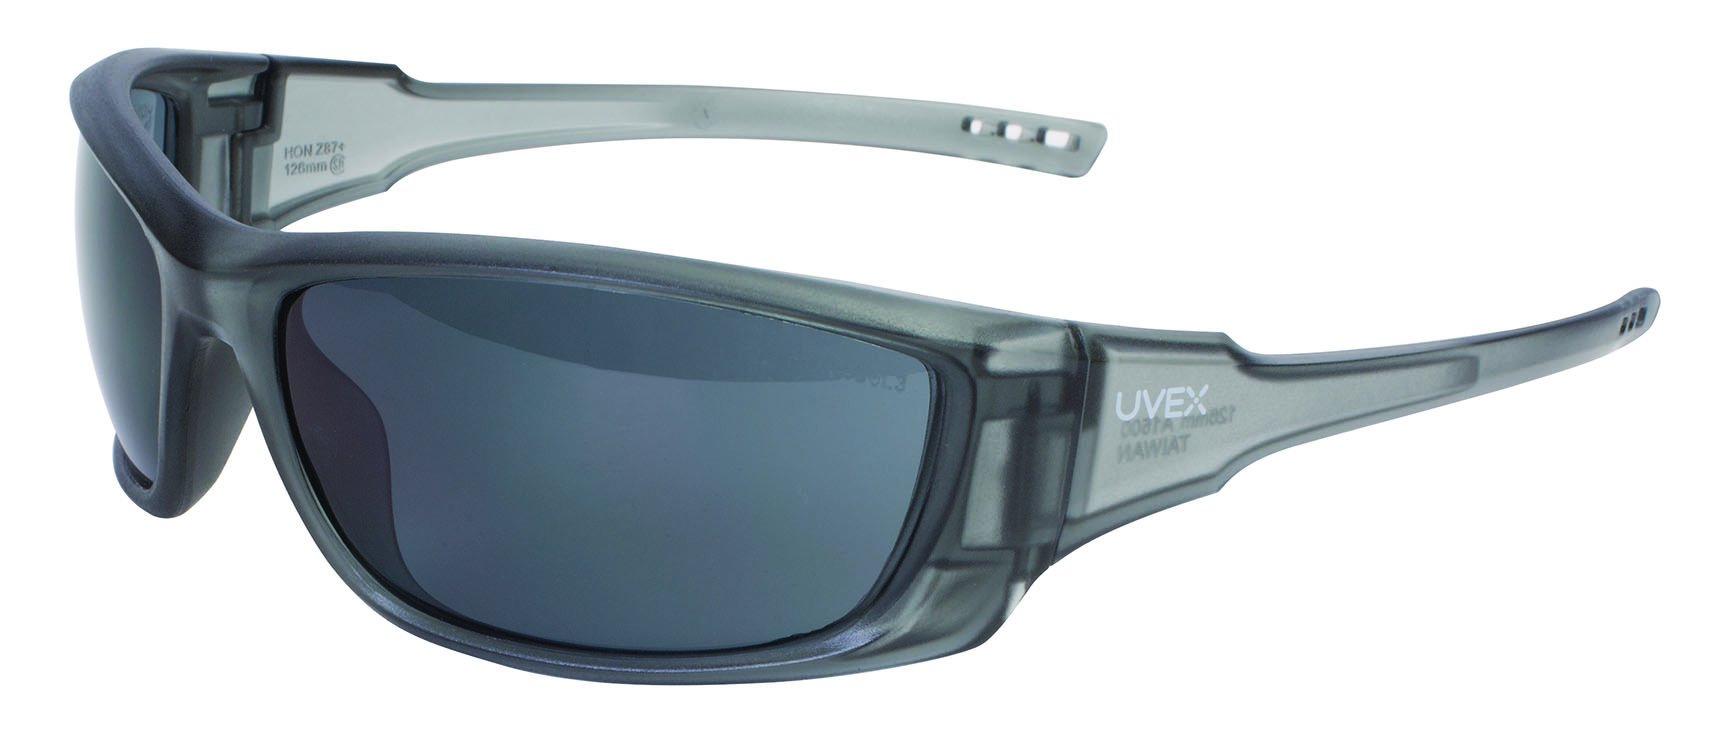 UVEX by Honeywell S2161 A1500 Series Safety Eyewear with Gray Frame, Gray Lens and Scratch-Resistant Hard Coat